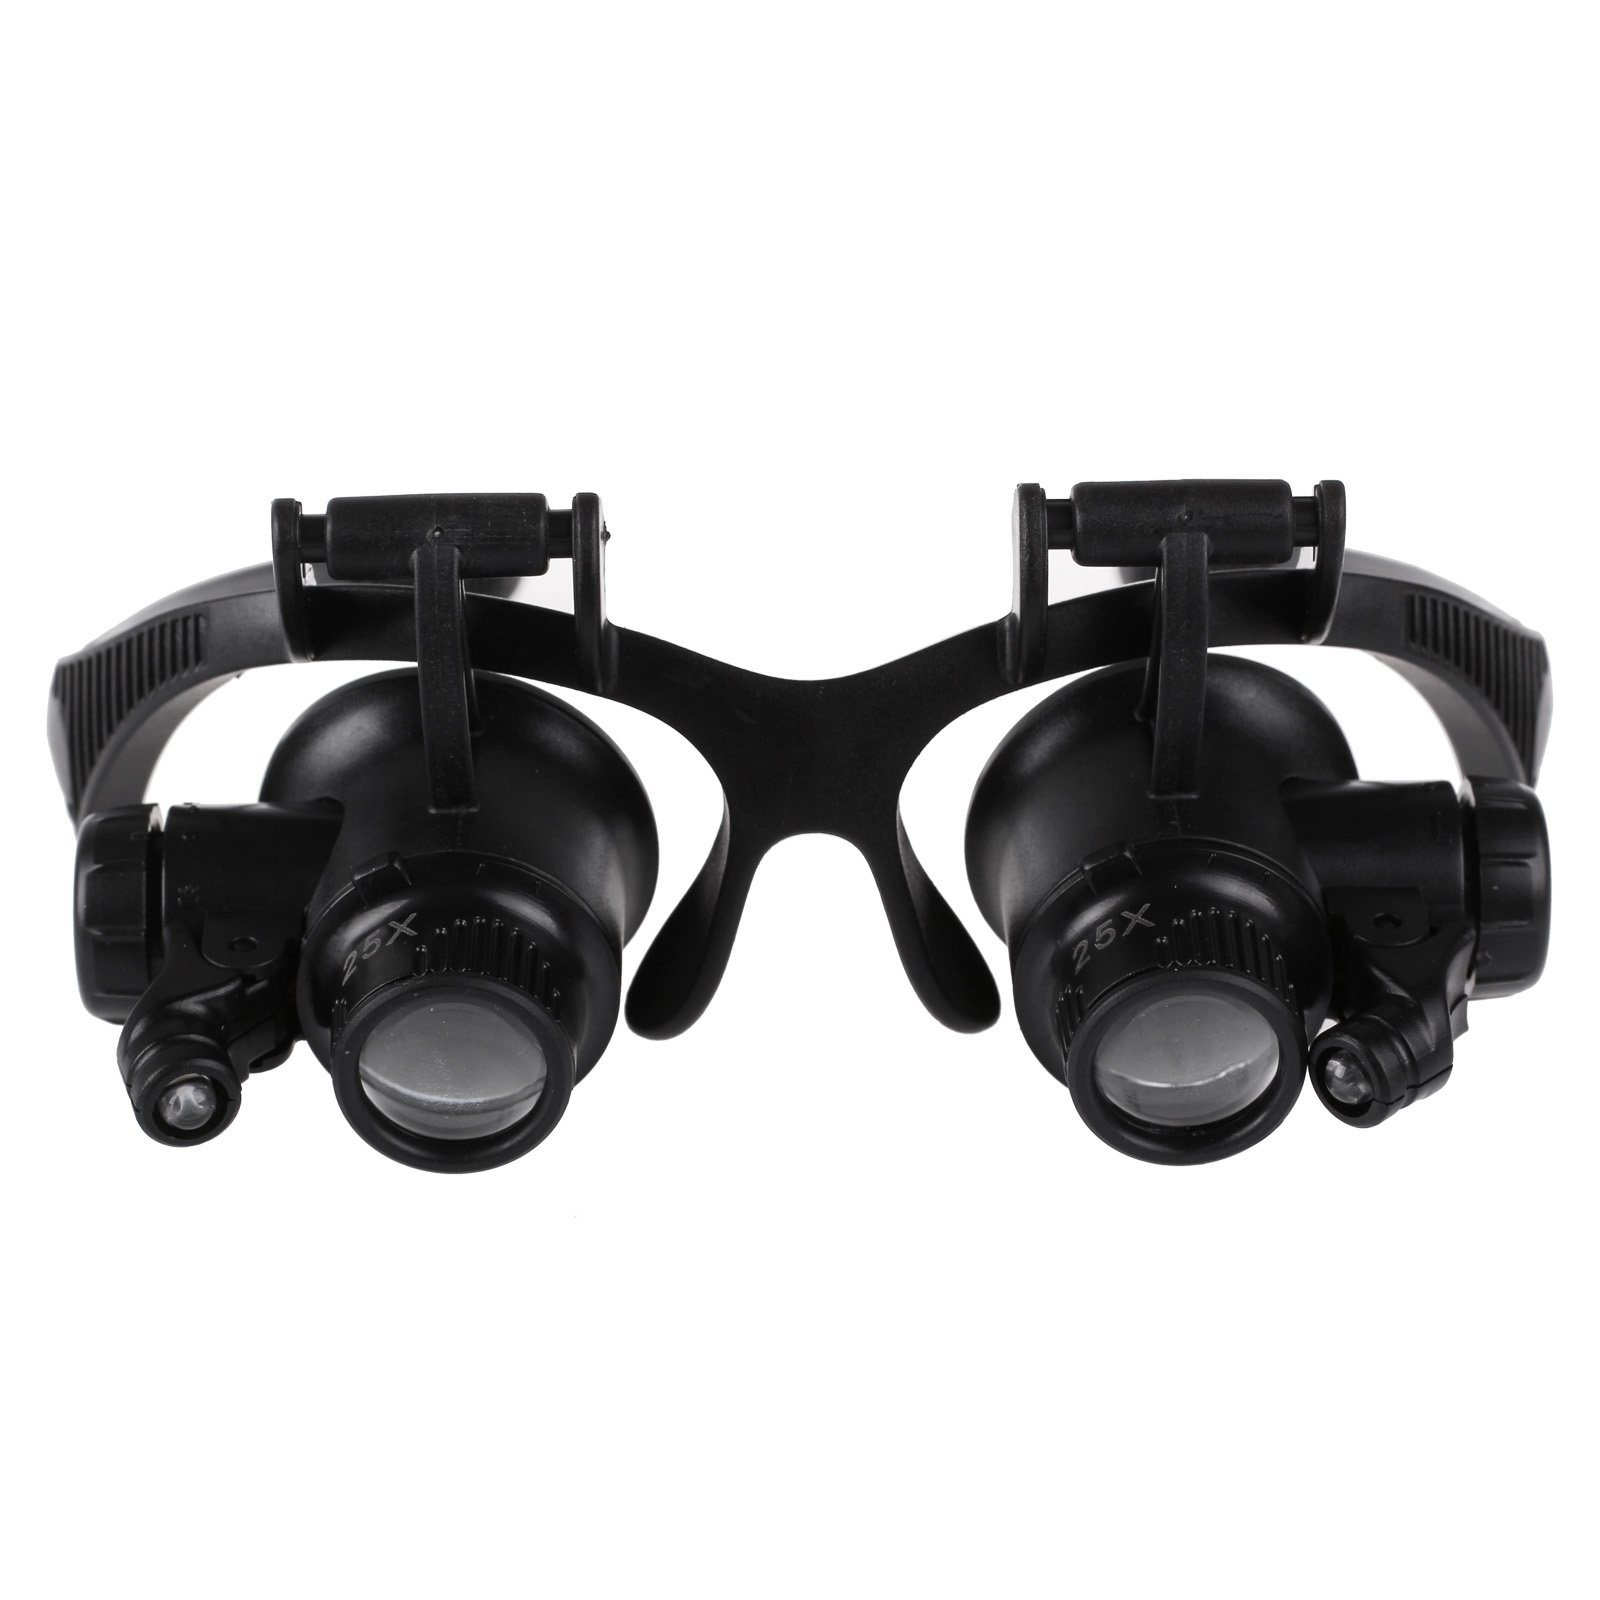 Jewelers New Glasses Magnifier Head Glass Loupe With Led